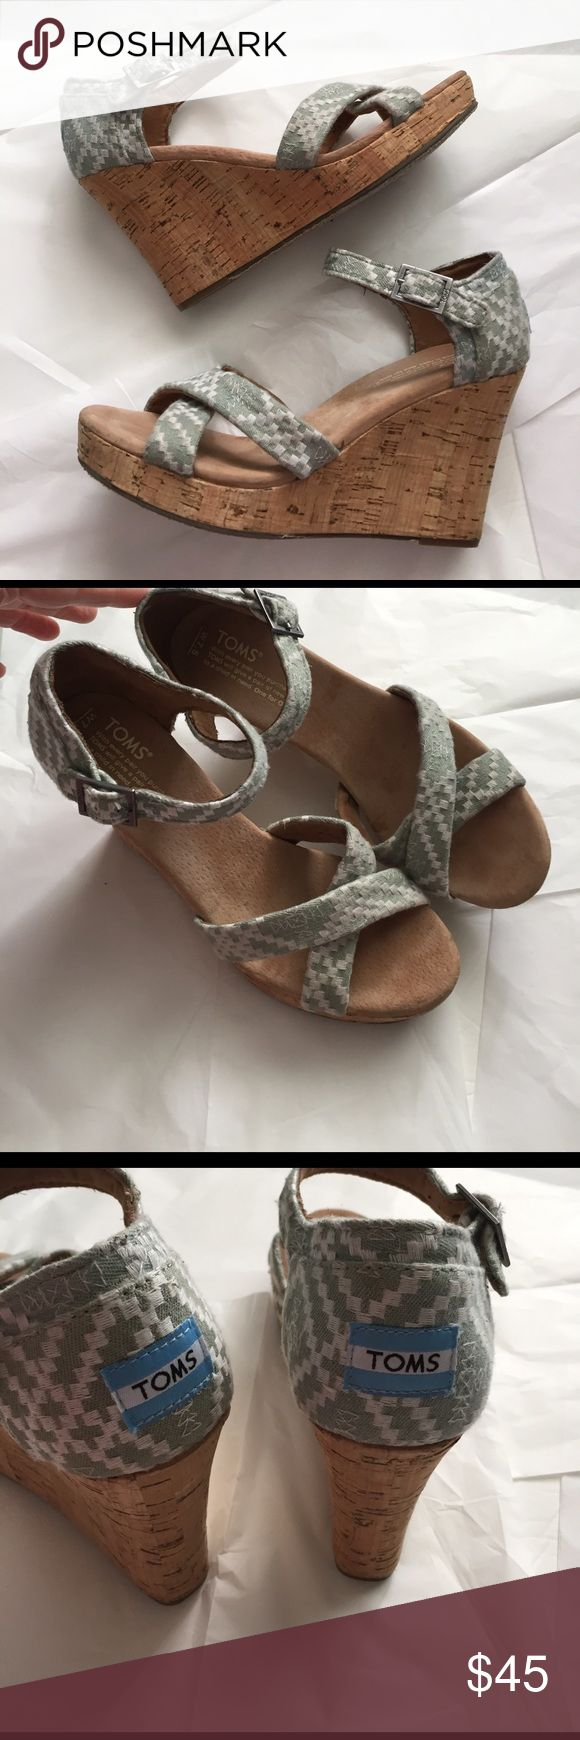 TOMS Wedge Sandals! TOMS wedge Sandals! Cork wedge with aztec print straps! Gray/green color! 4 inch wedge! Great condition! Gently used! TOMS Shoes Sandals